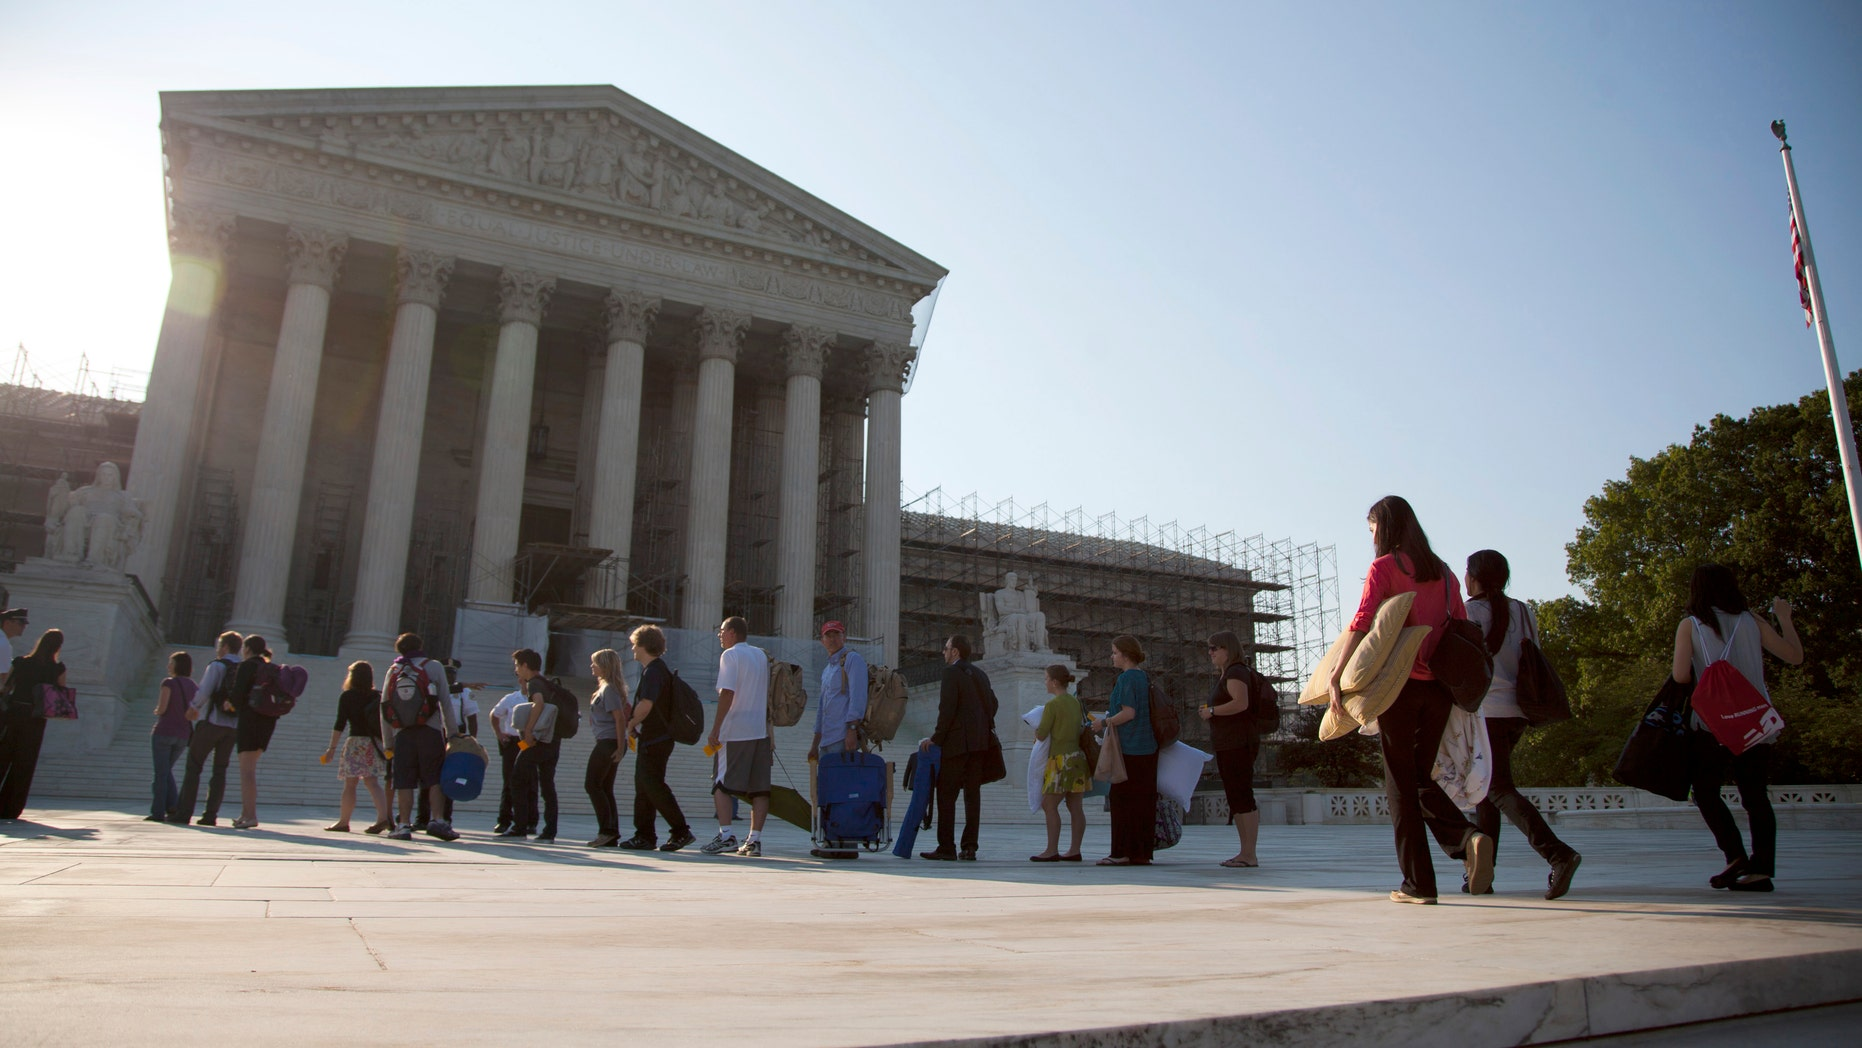 FILE - This June 28, 2012 file photo shows people waiting in line to hear cases at the Supreme Court in Washington, Thursday, June 28, 2012.  A unanimous Supreme Court ruled Monday that prosecutors may not rely on an international chemical weapons treaty to convict a woman who attacked her husband's mistress. The justices threw out the conviction of Carol Anne Bond of Lansdale, Pa., who was prosecuted under a 1999 law based on the chemical weapons treaty. Bond served a six-year prison term after being convicted of using toxic chemicals that caused a thumb burn on a friend who had become her husband's lover.  (AP Photo/Evan Vucci, File)